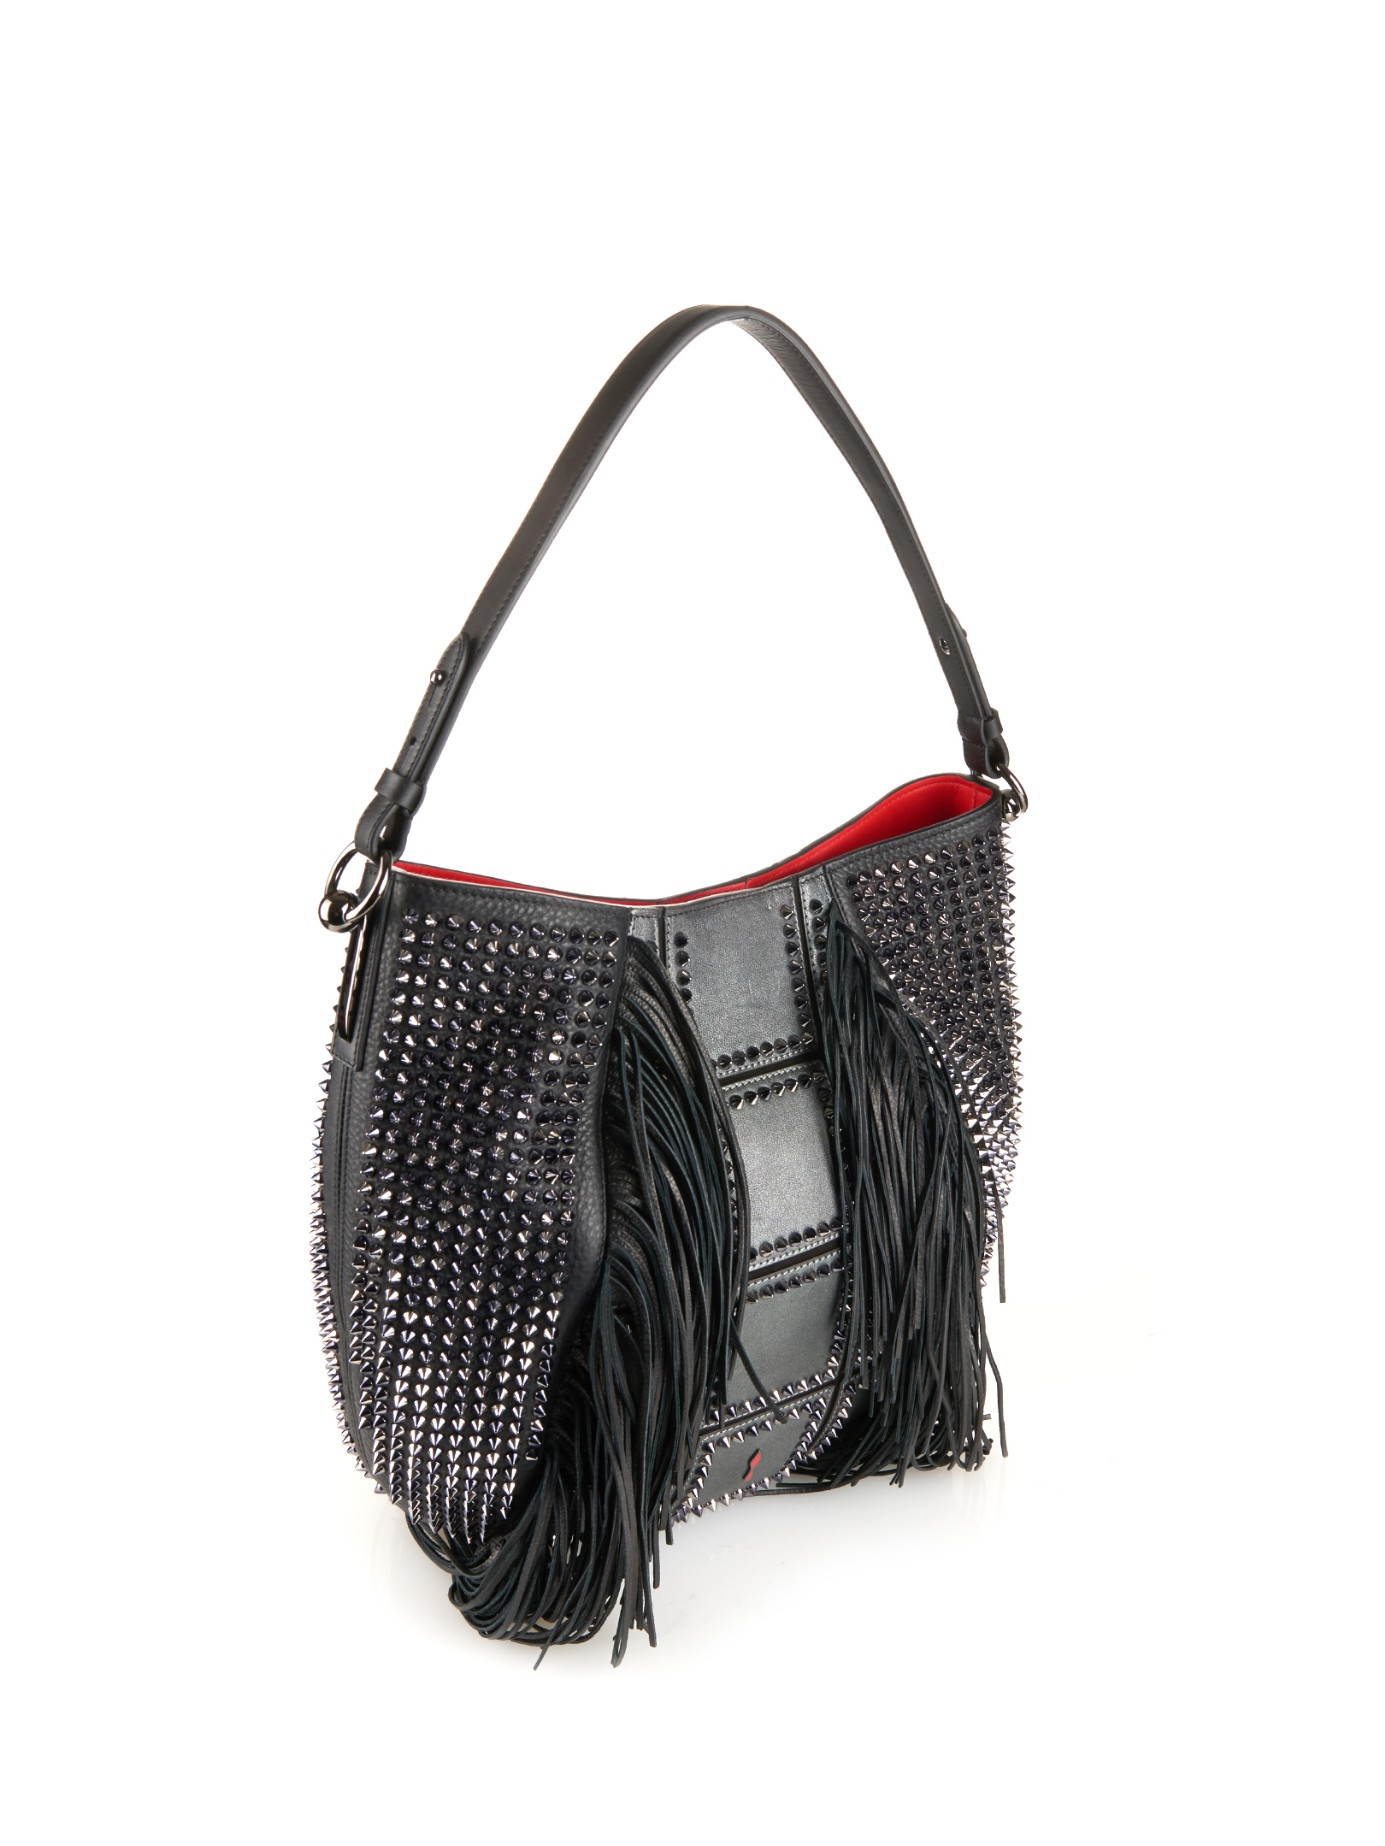 a8ed2a54b6 Gallery. Previously sold at: MATCHESFASHION.COM · Women's Fringed Bags